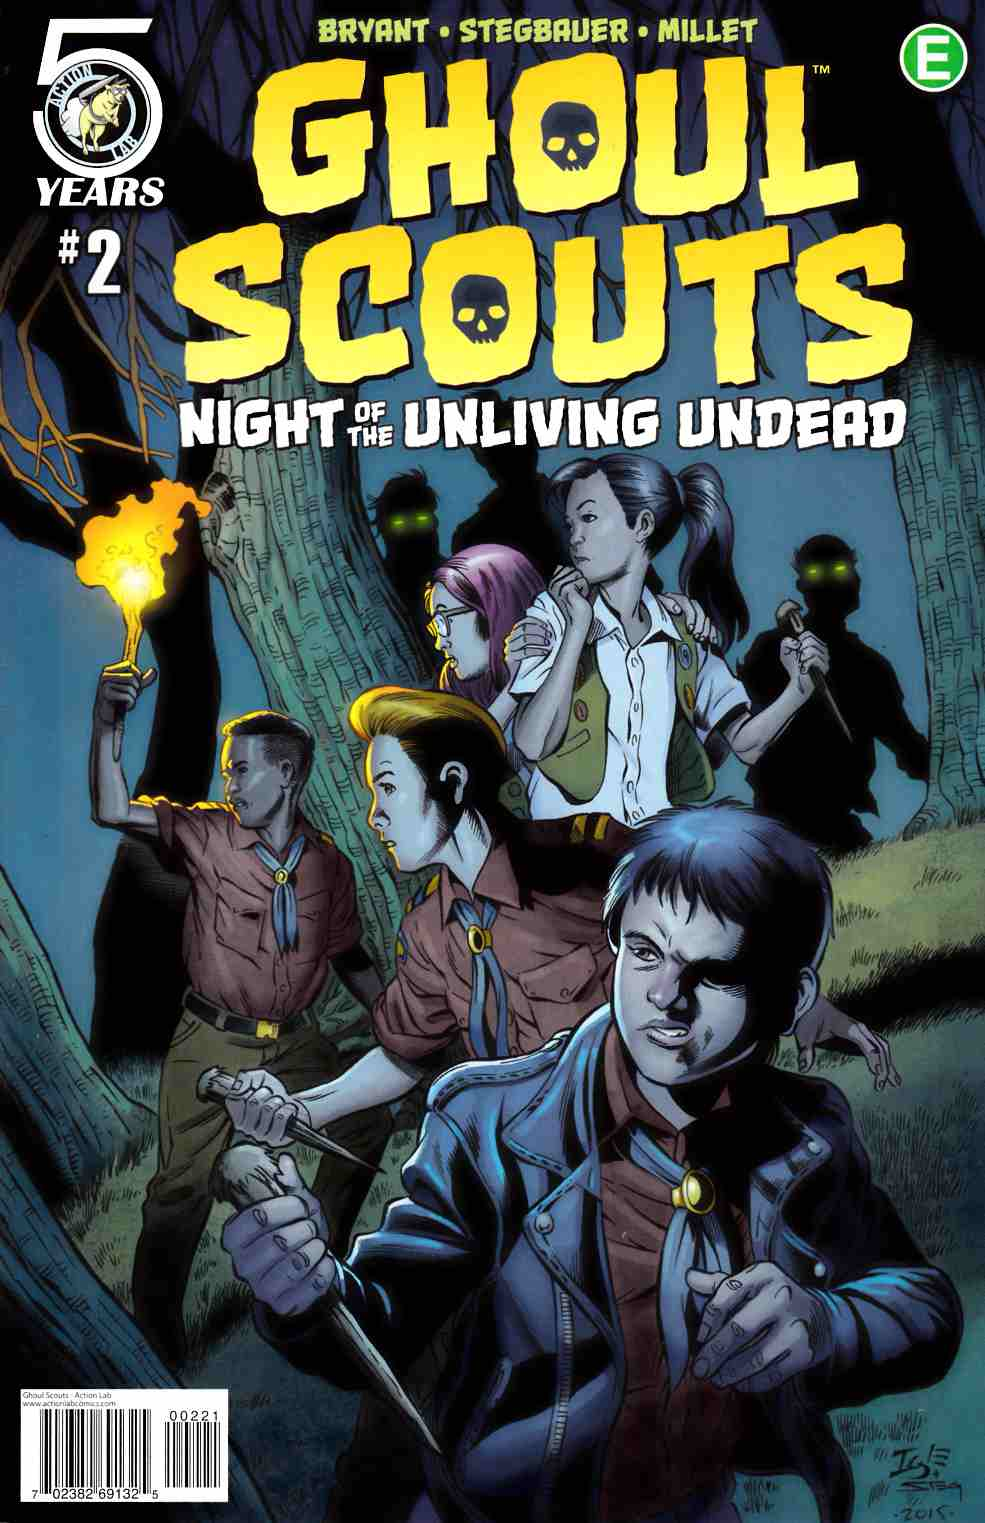 Ghoul Scouts Night of the Unliving Undead #2 Cover B [Action Lab Comic] THUMBNAIL